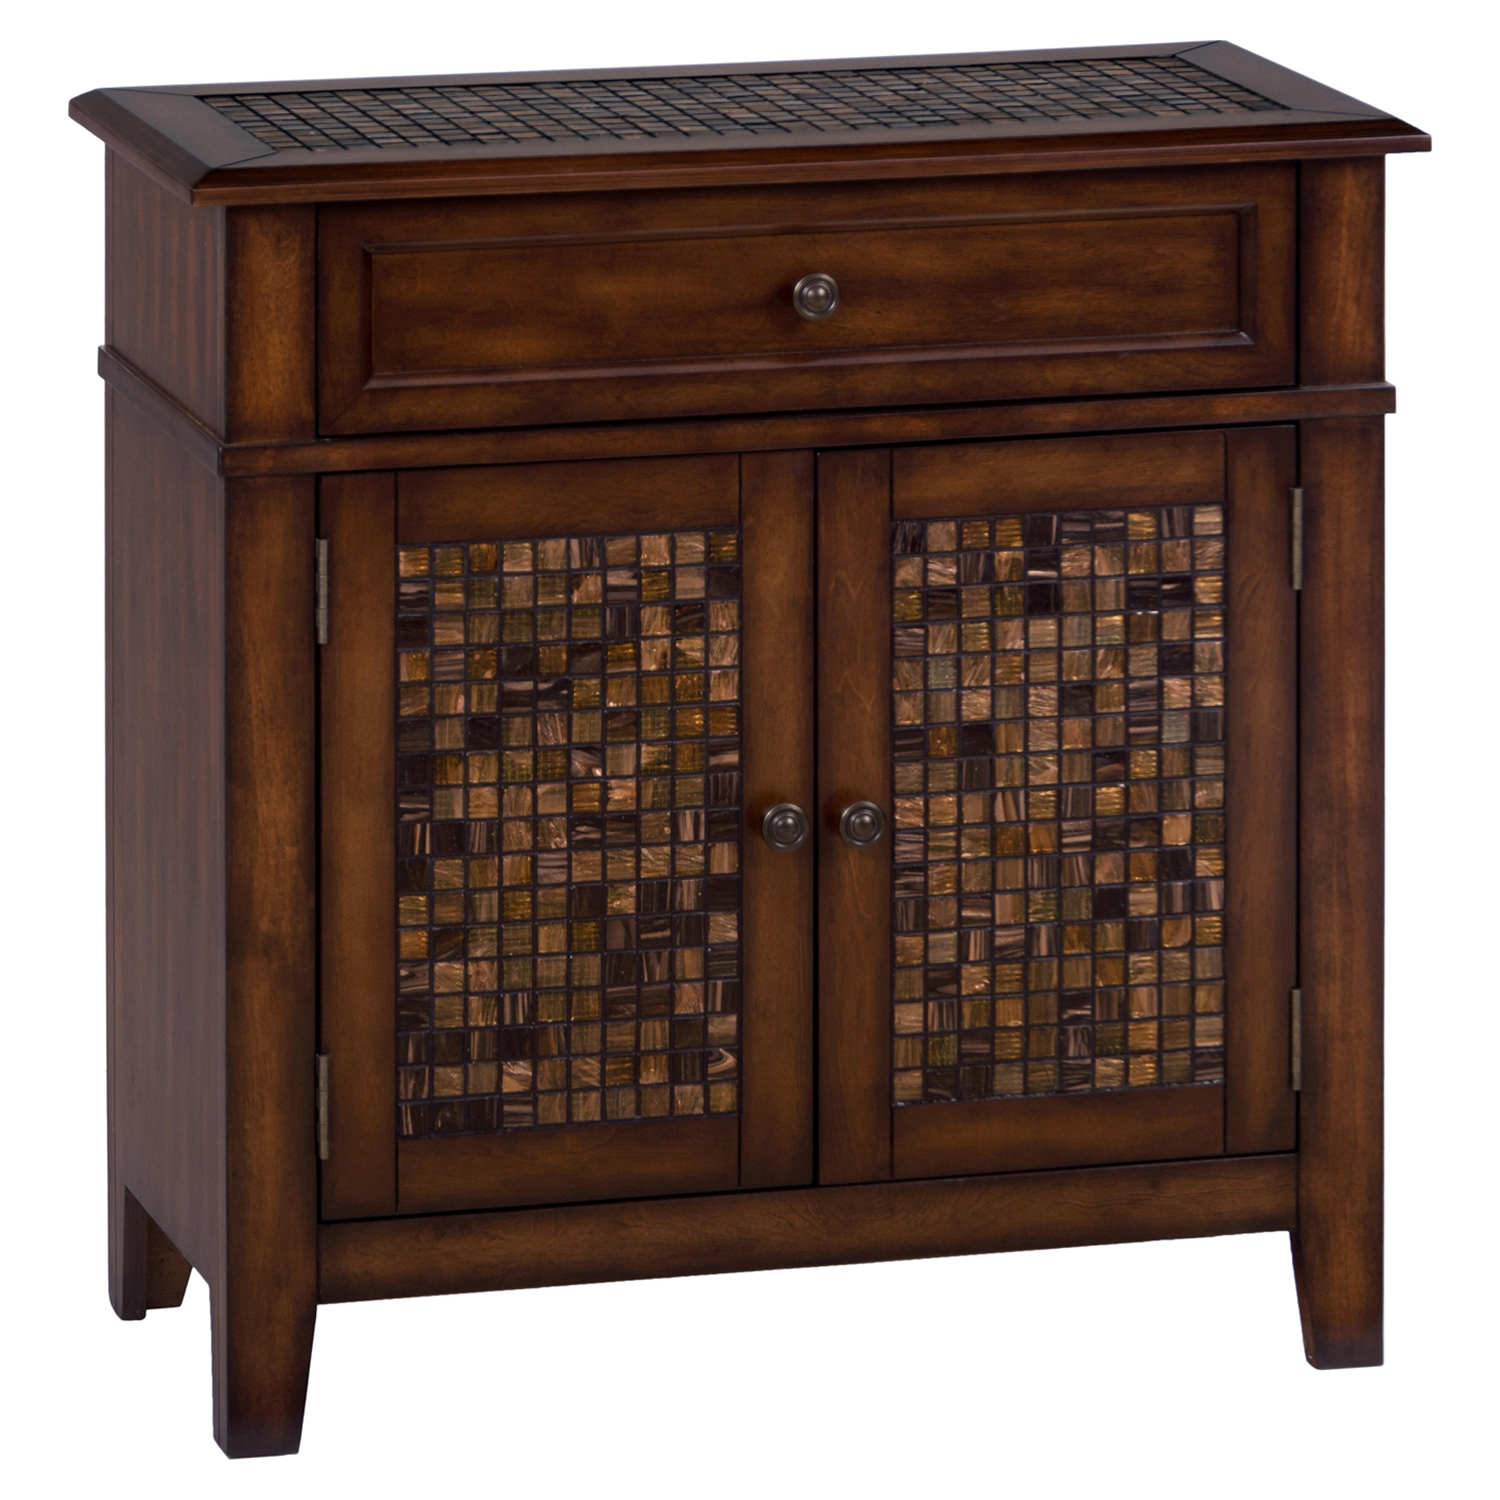 Baroque Accent Cabinet - Mosaic Tile Inlay, Brown - JOFR-698-13